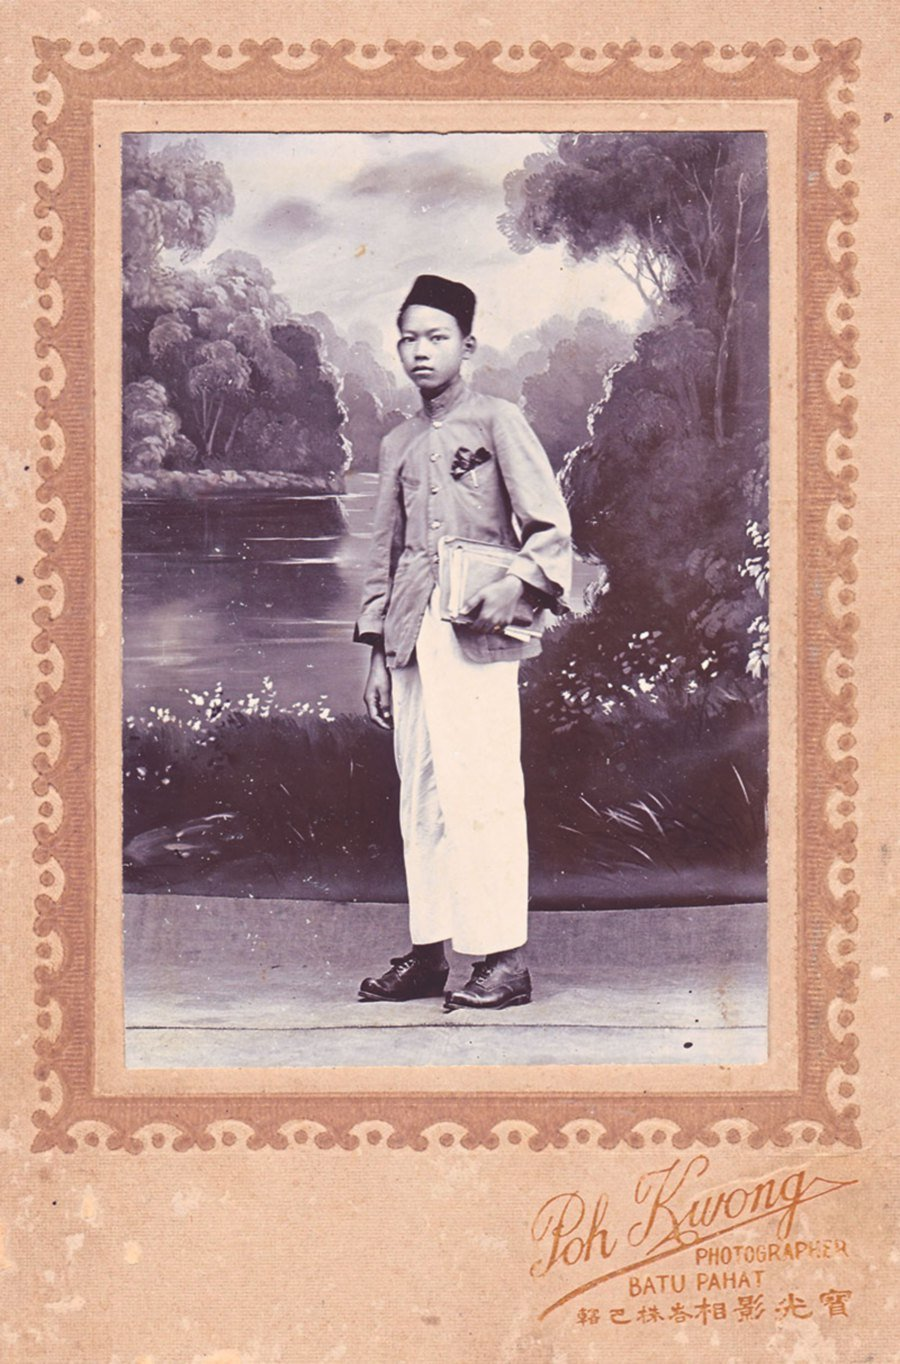 A young Malay teacher taken in Batu Pahat, Johor in the early 1920s.